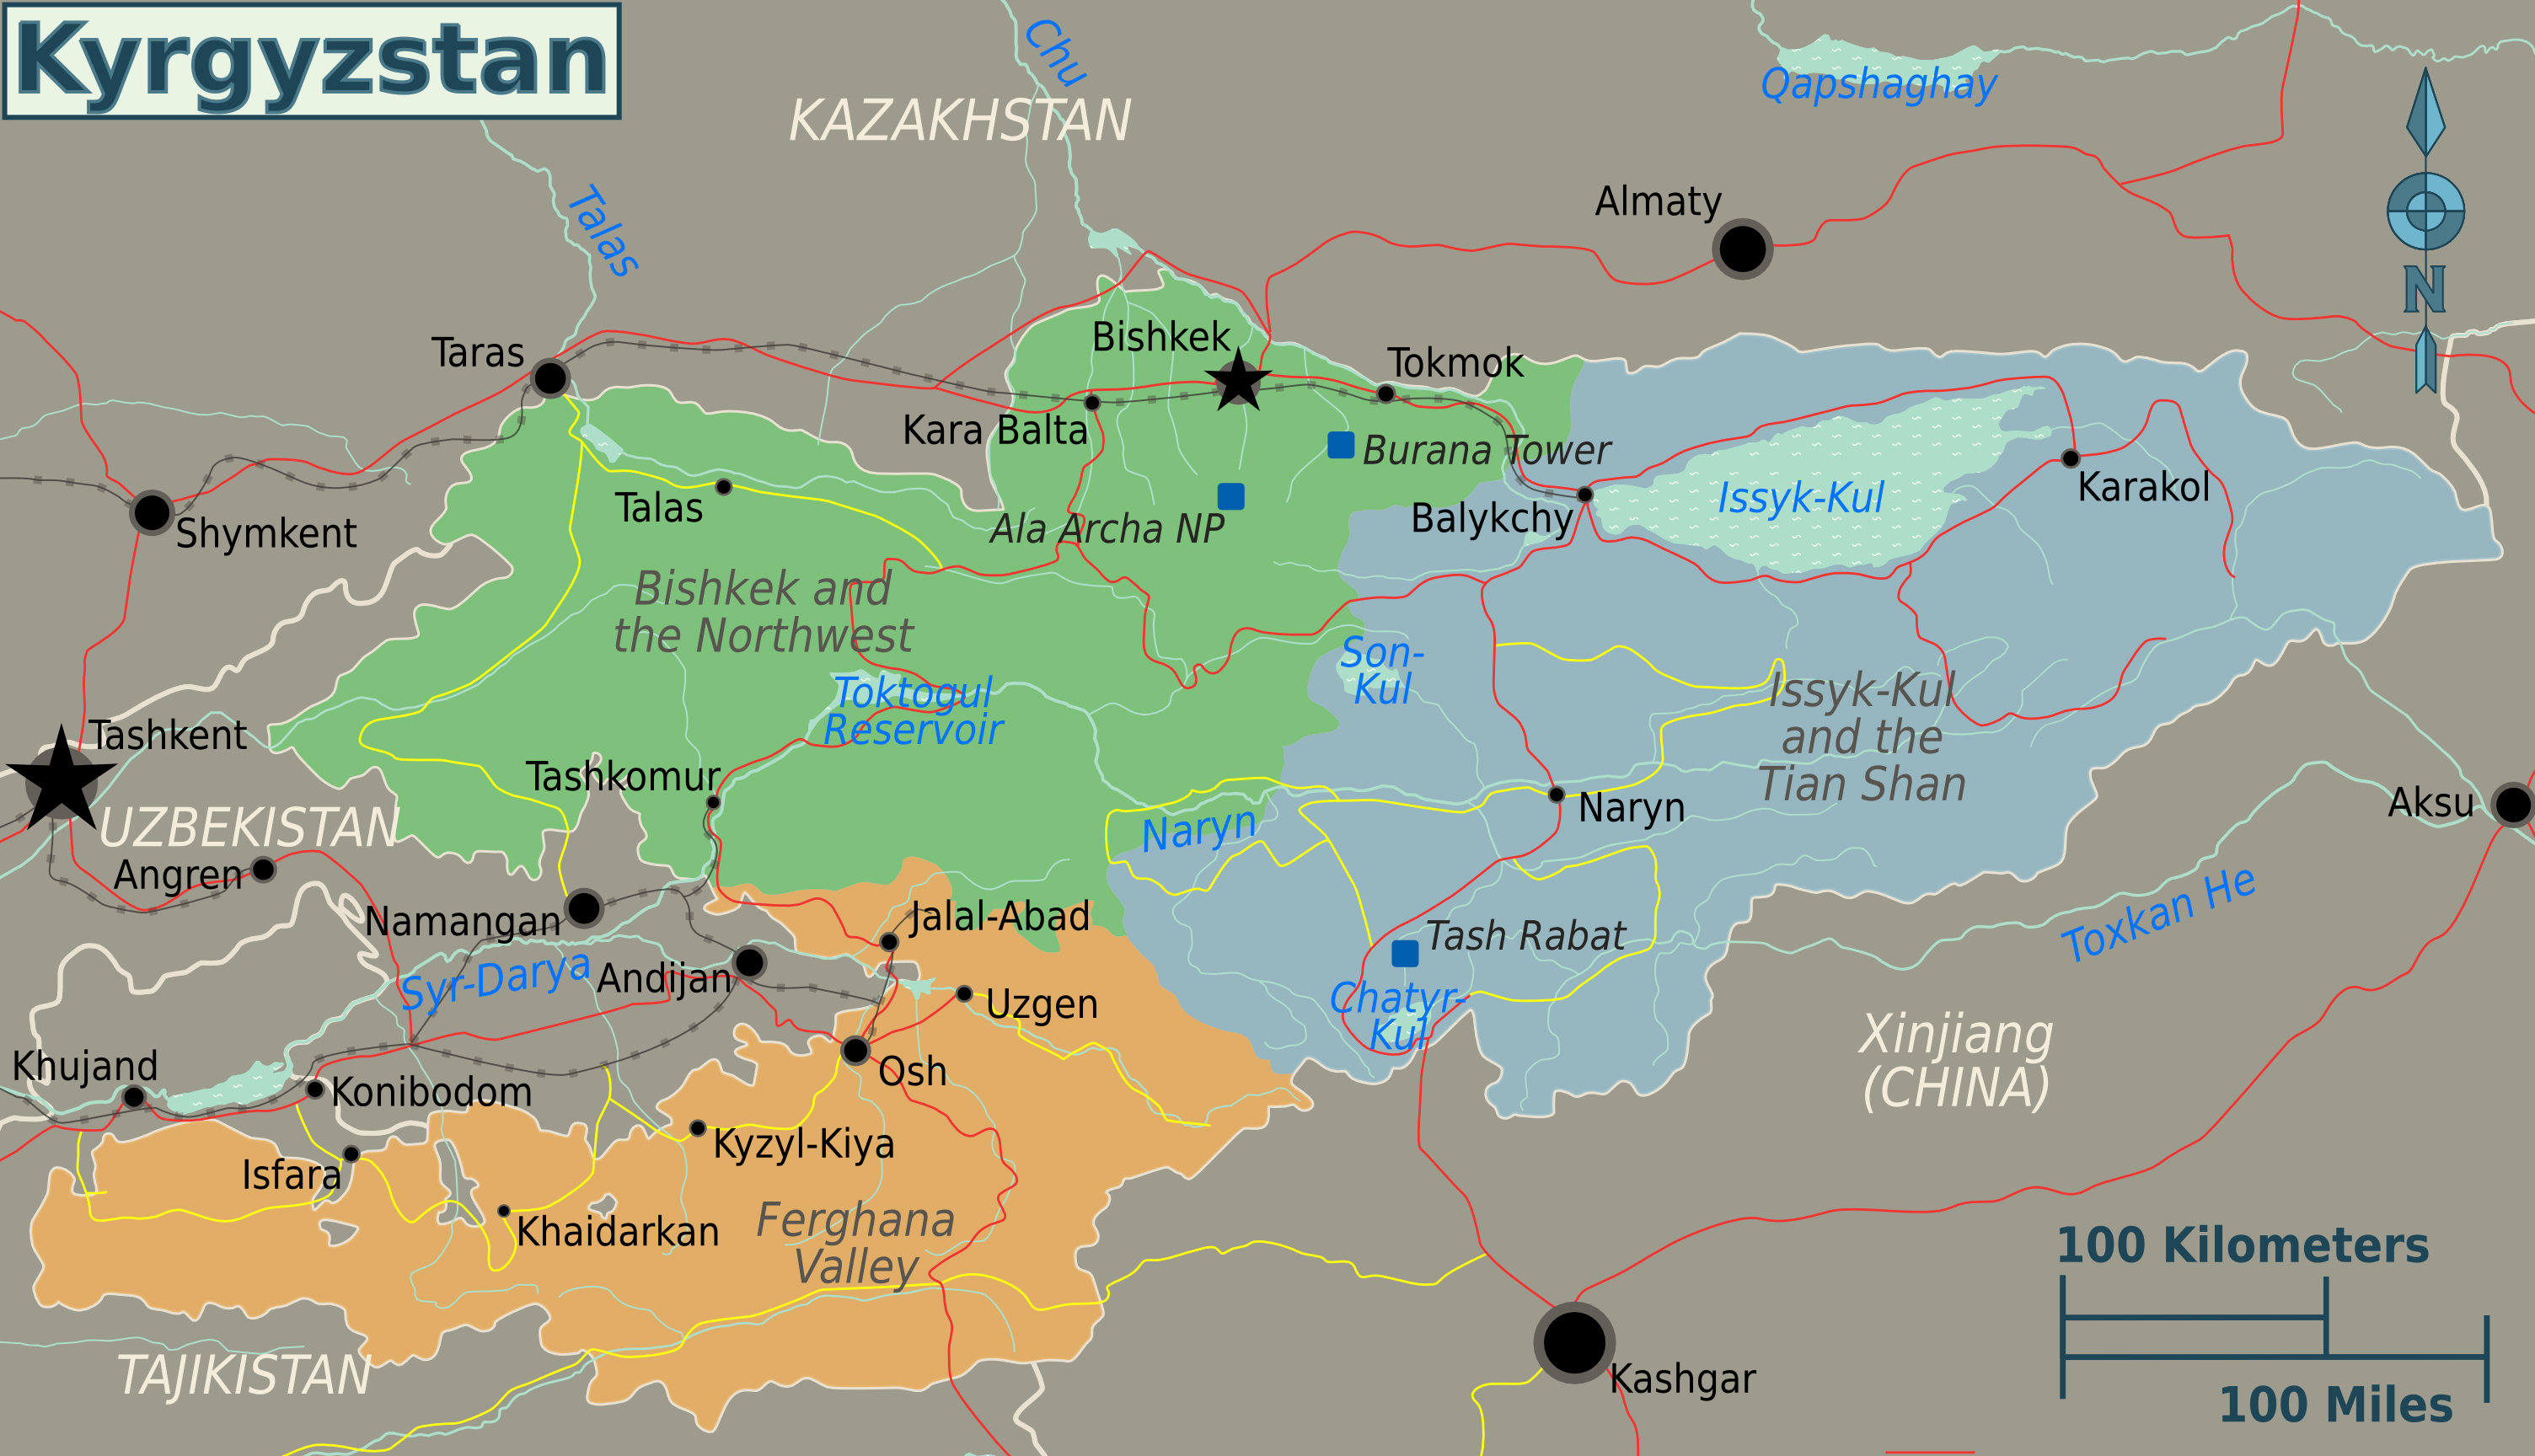 Large regions map of kyrgyzstan kyrgyzstan asia mapsland large regions map of kyrgyzstan gumiabroncs Images